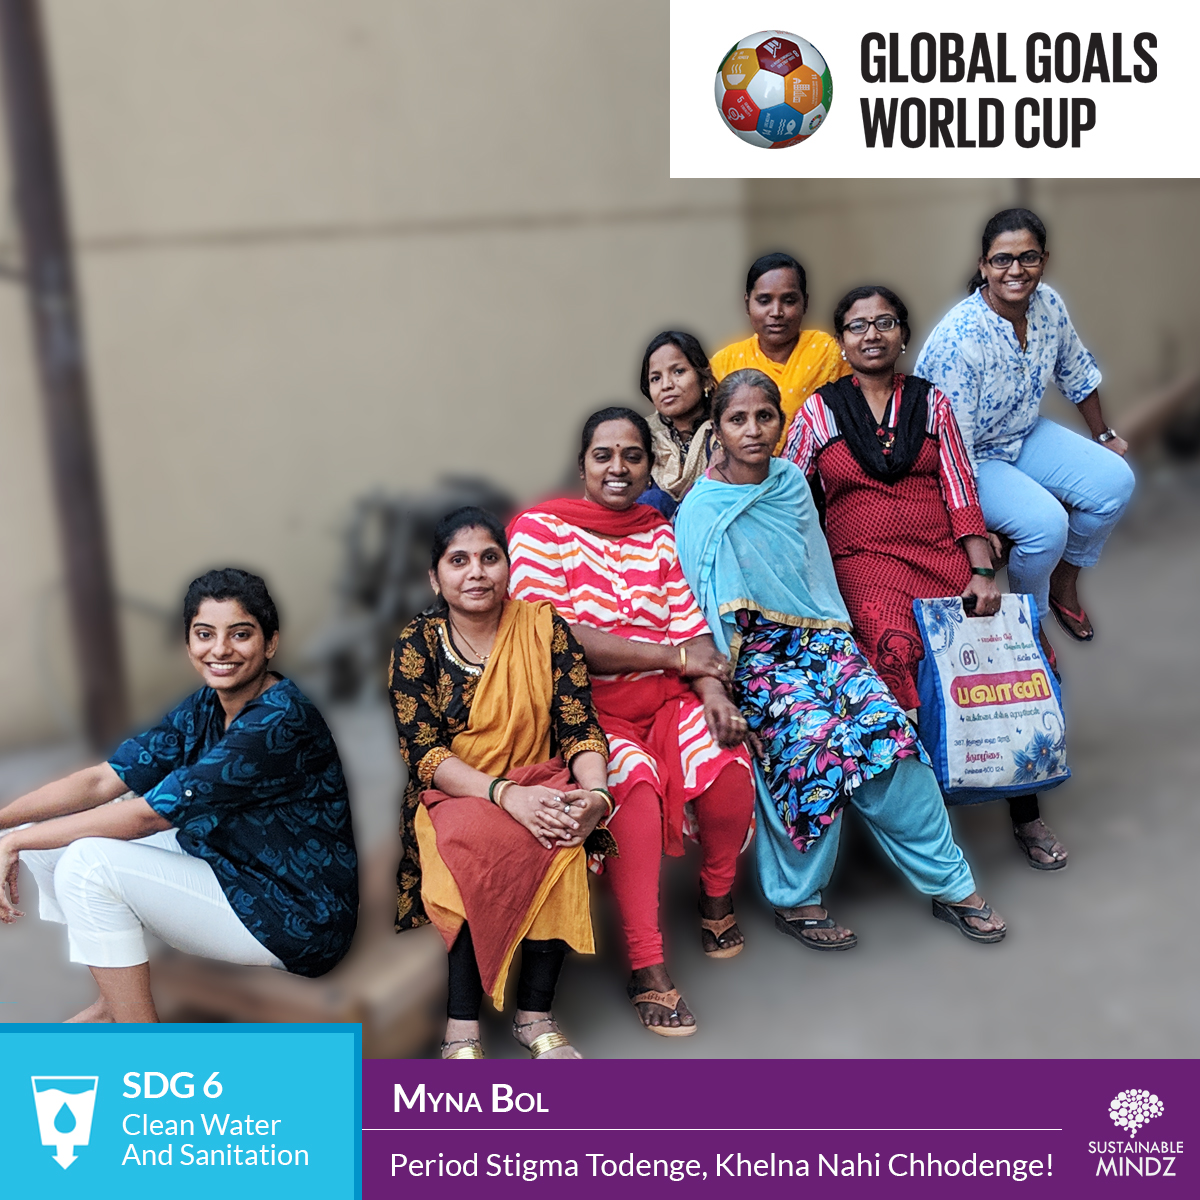 The  Myna Mahila Foundation  works to empower women to talk about issues that they are afraid to discuss out loud and we salutes this spirit! They'll be hoping to reign supreme come February as they'll go head-to-head against the others at the GGWCup Mumbai.